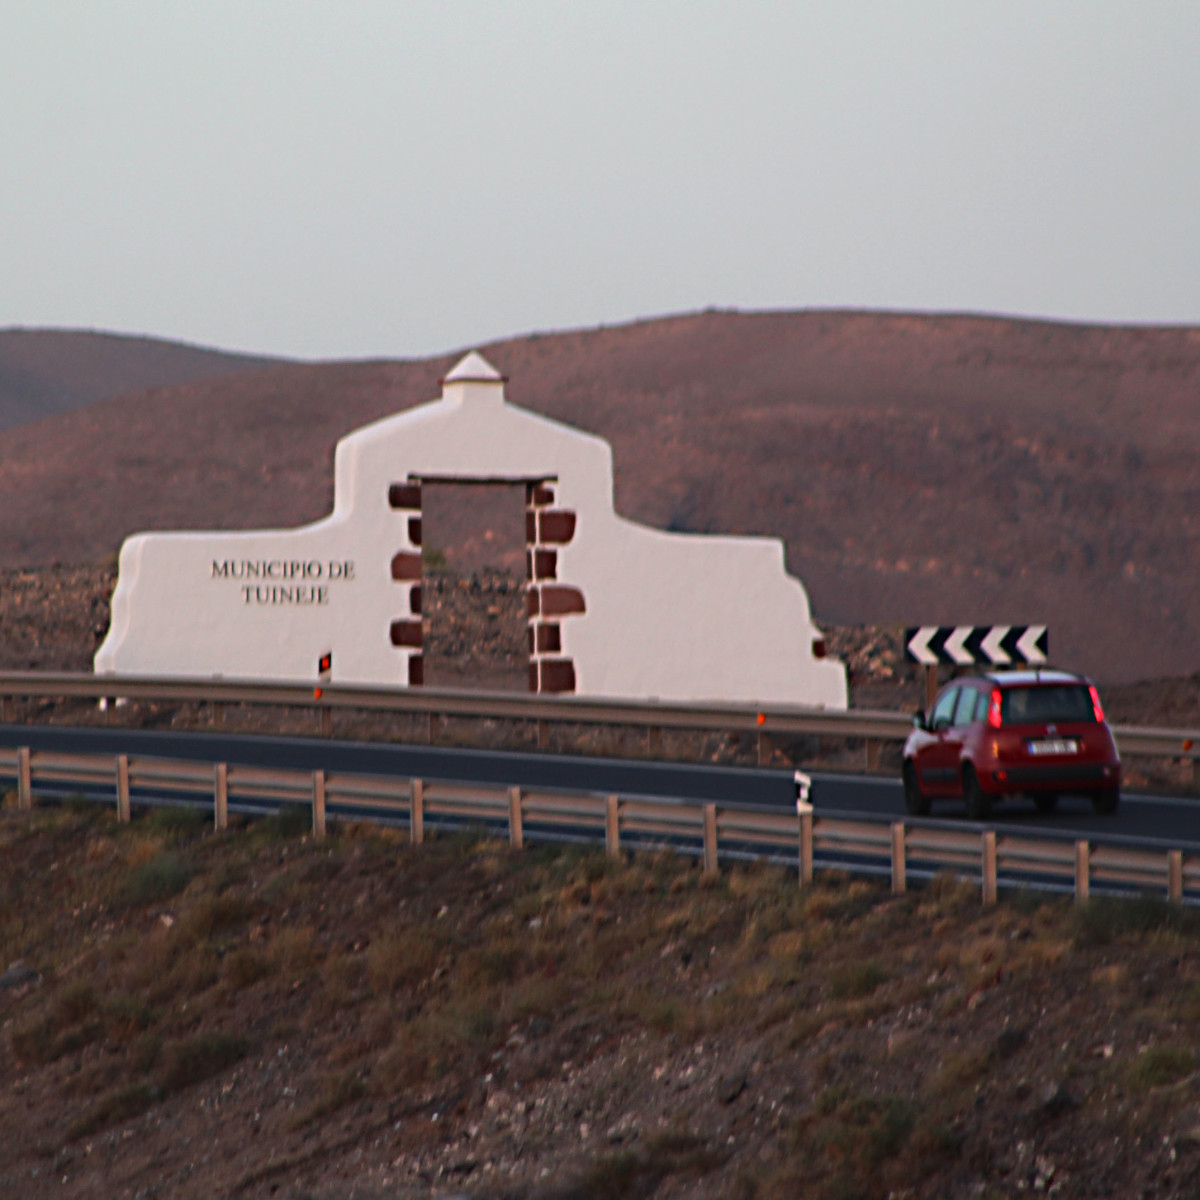 Fuerteventura comprises six administrative municipalities, and as one passes from one municipality to another, the border is marked by one of these monumental signposts